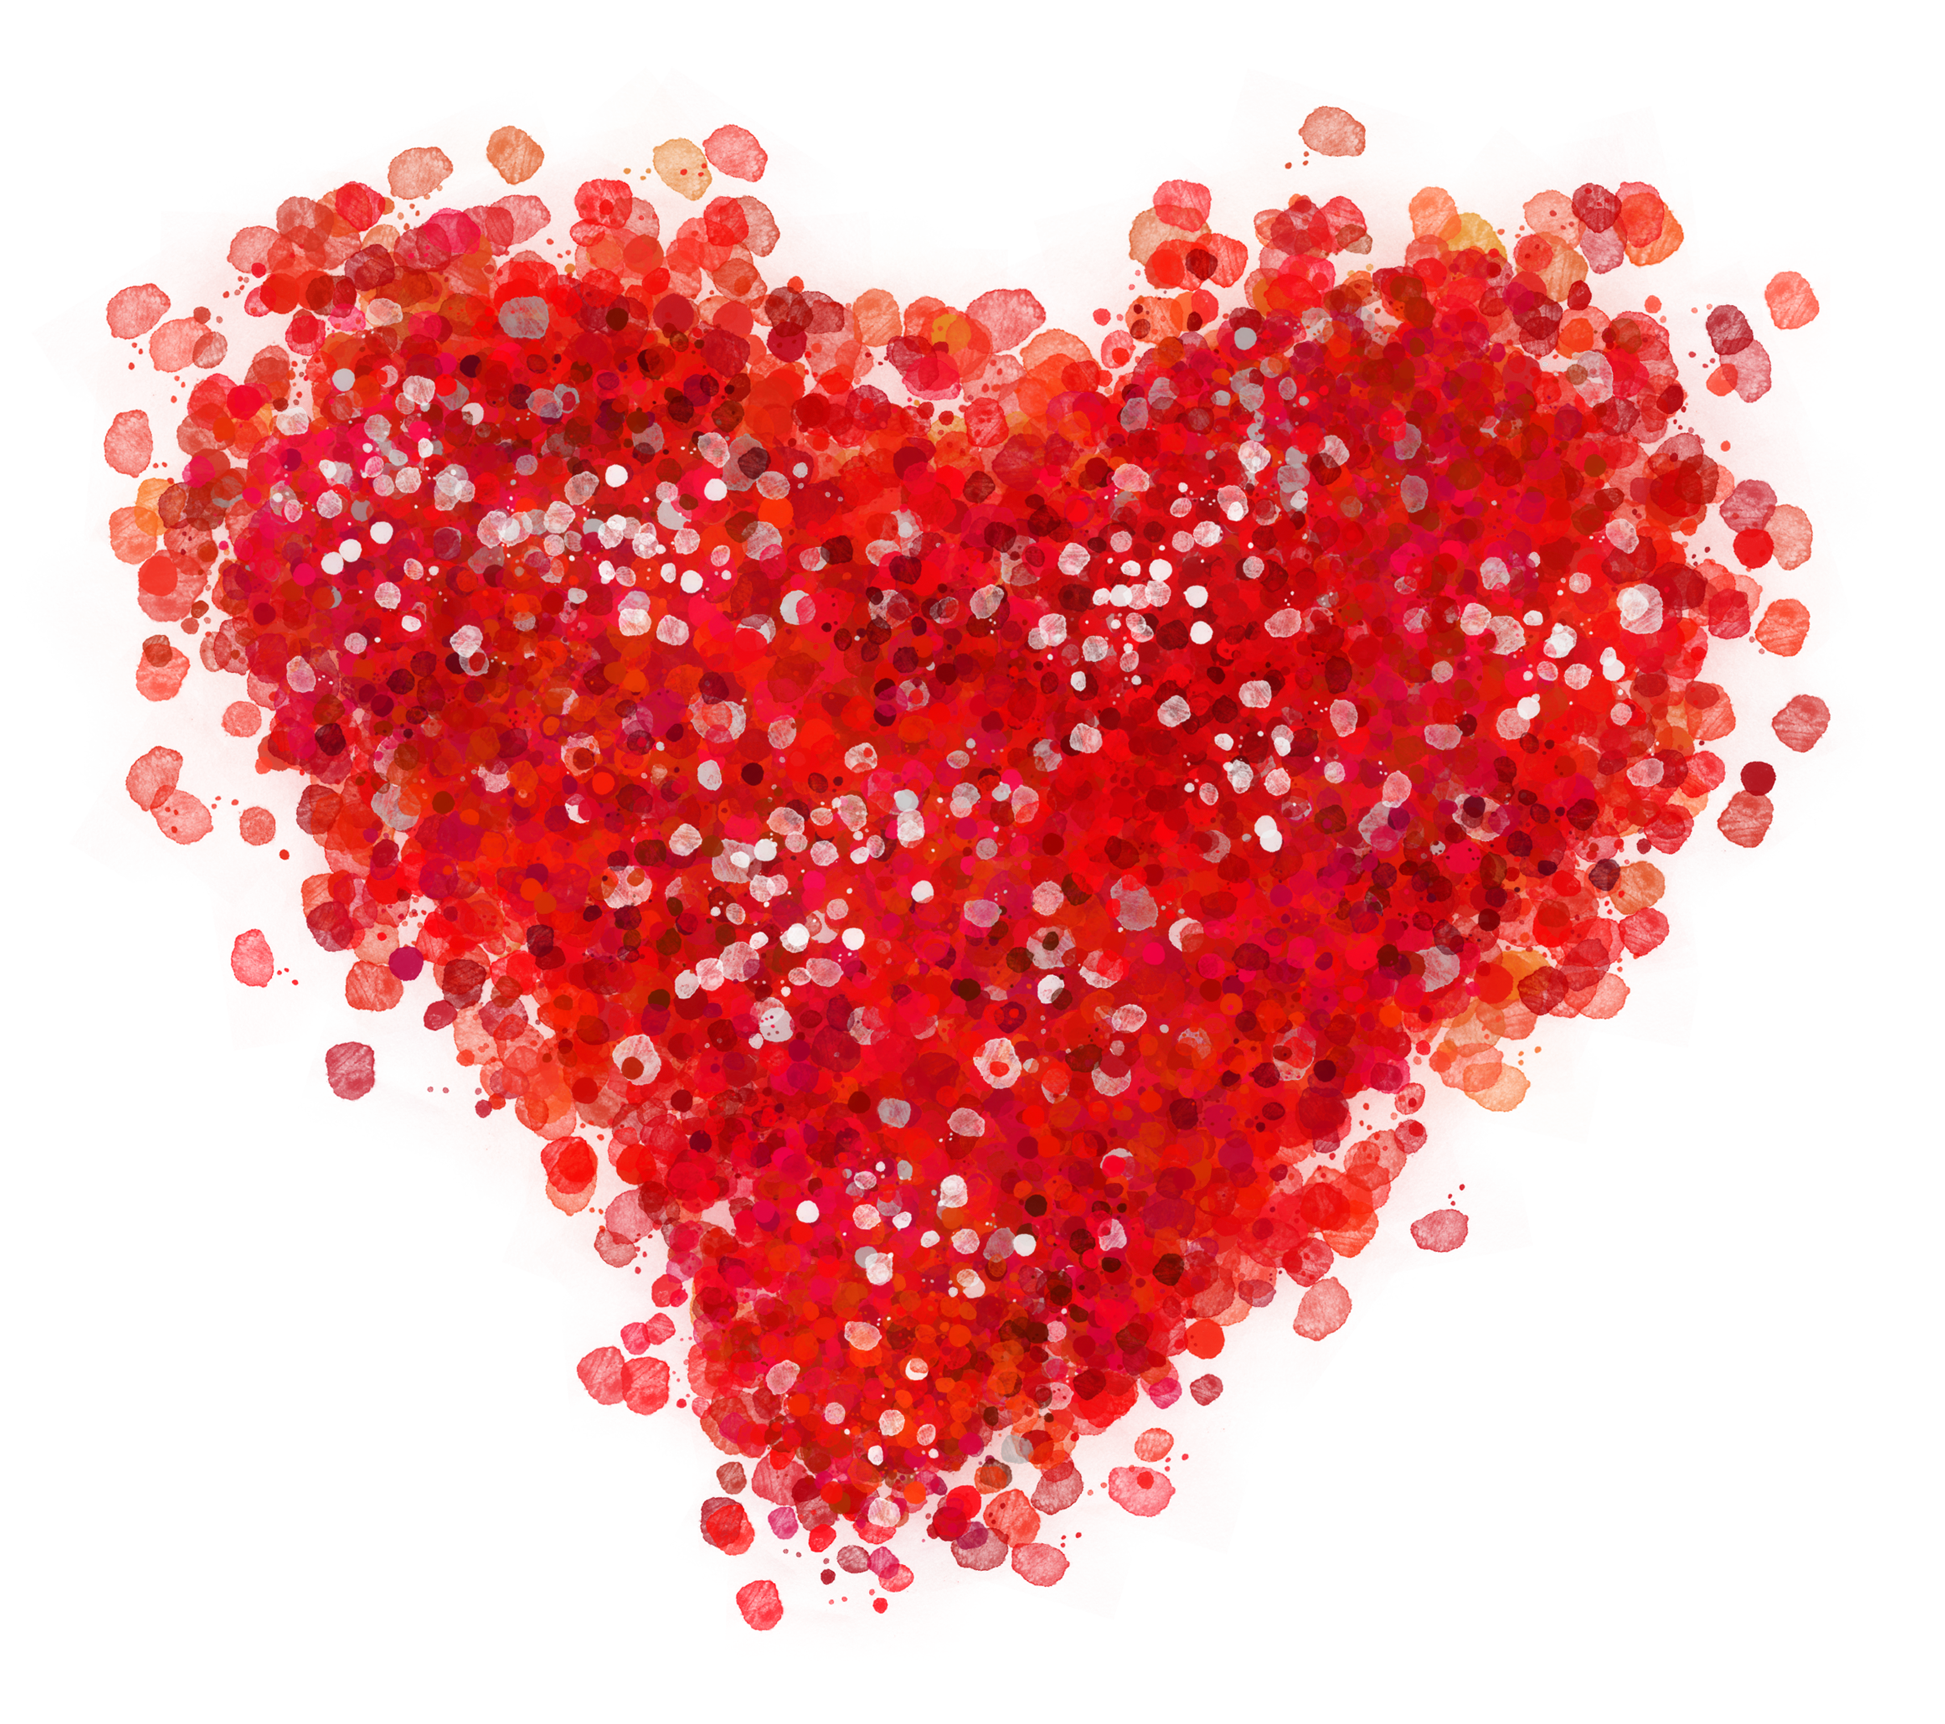 Red heart png. Decorative clipart picture gallery